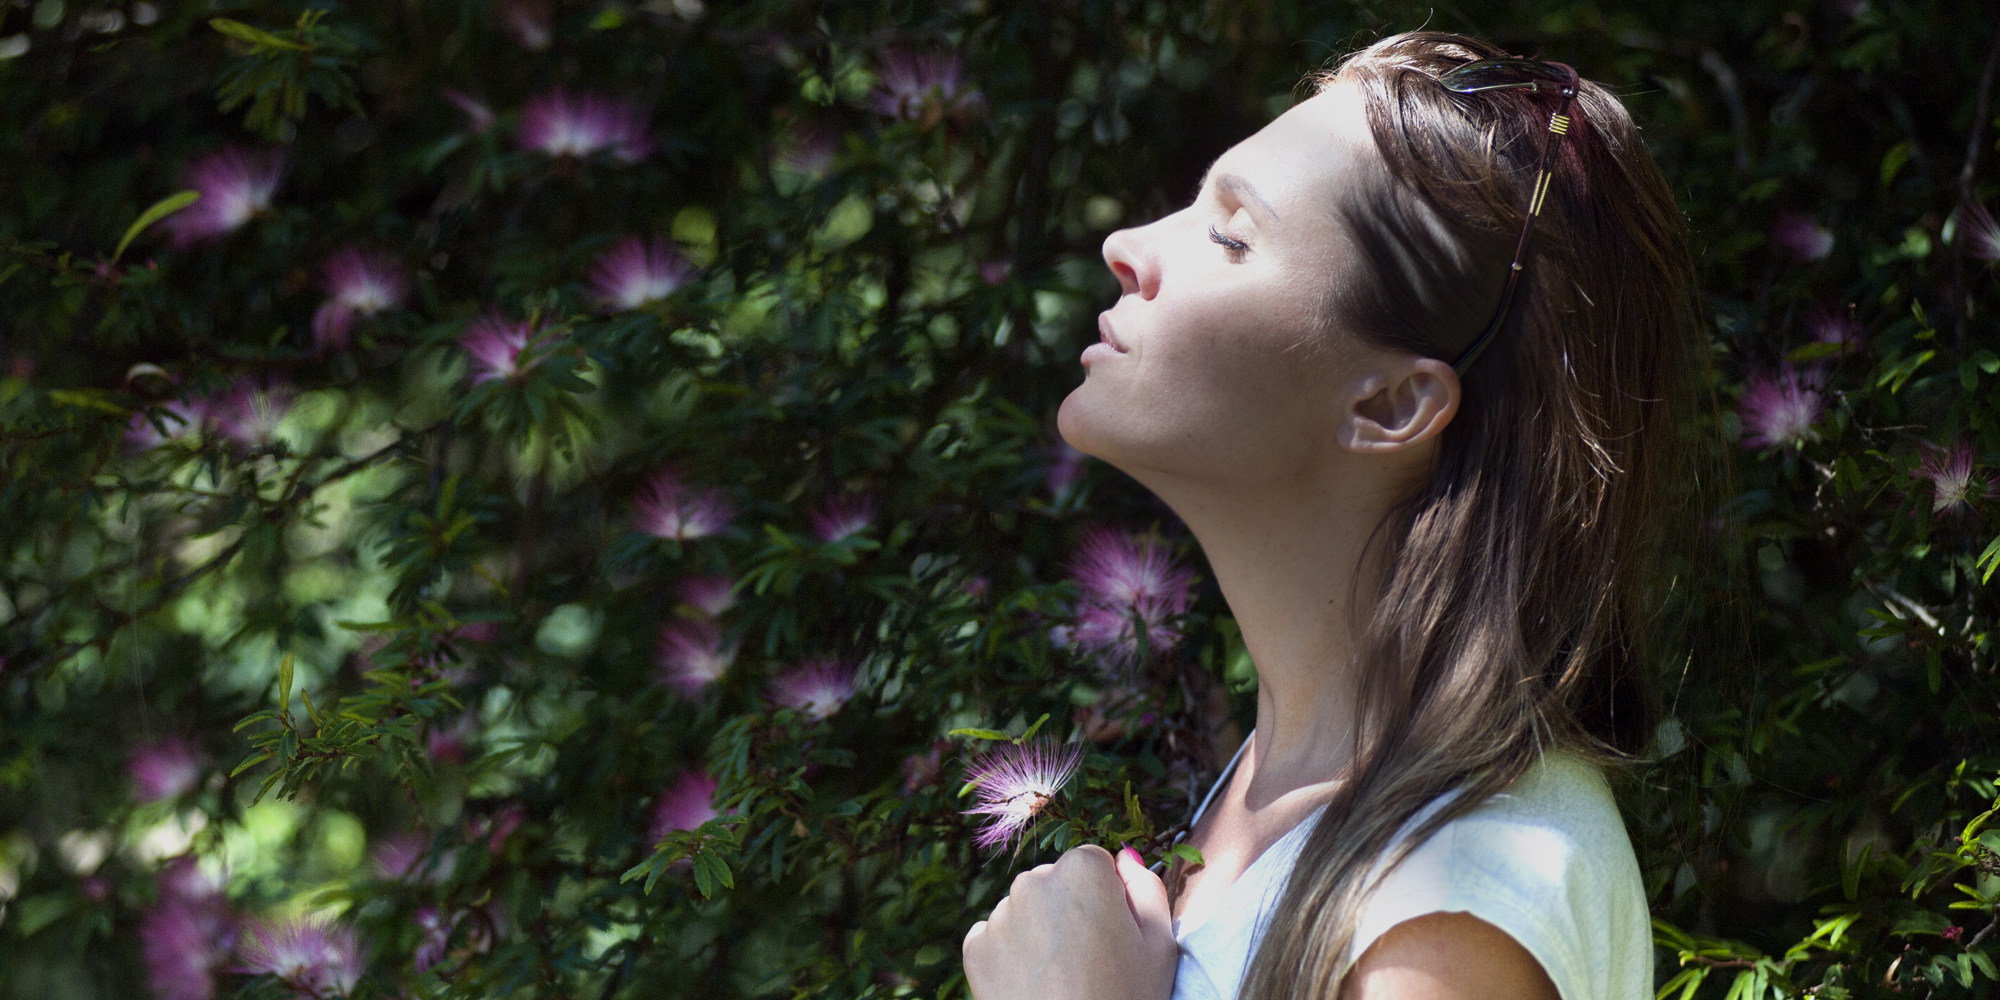 woman closing eyes in nature